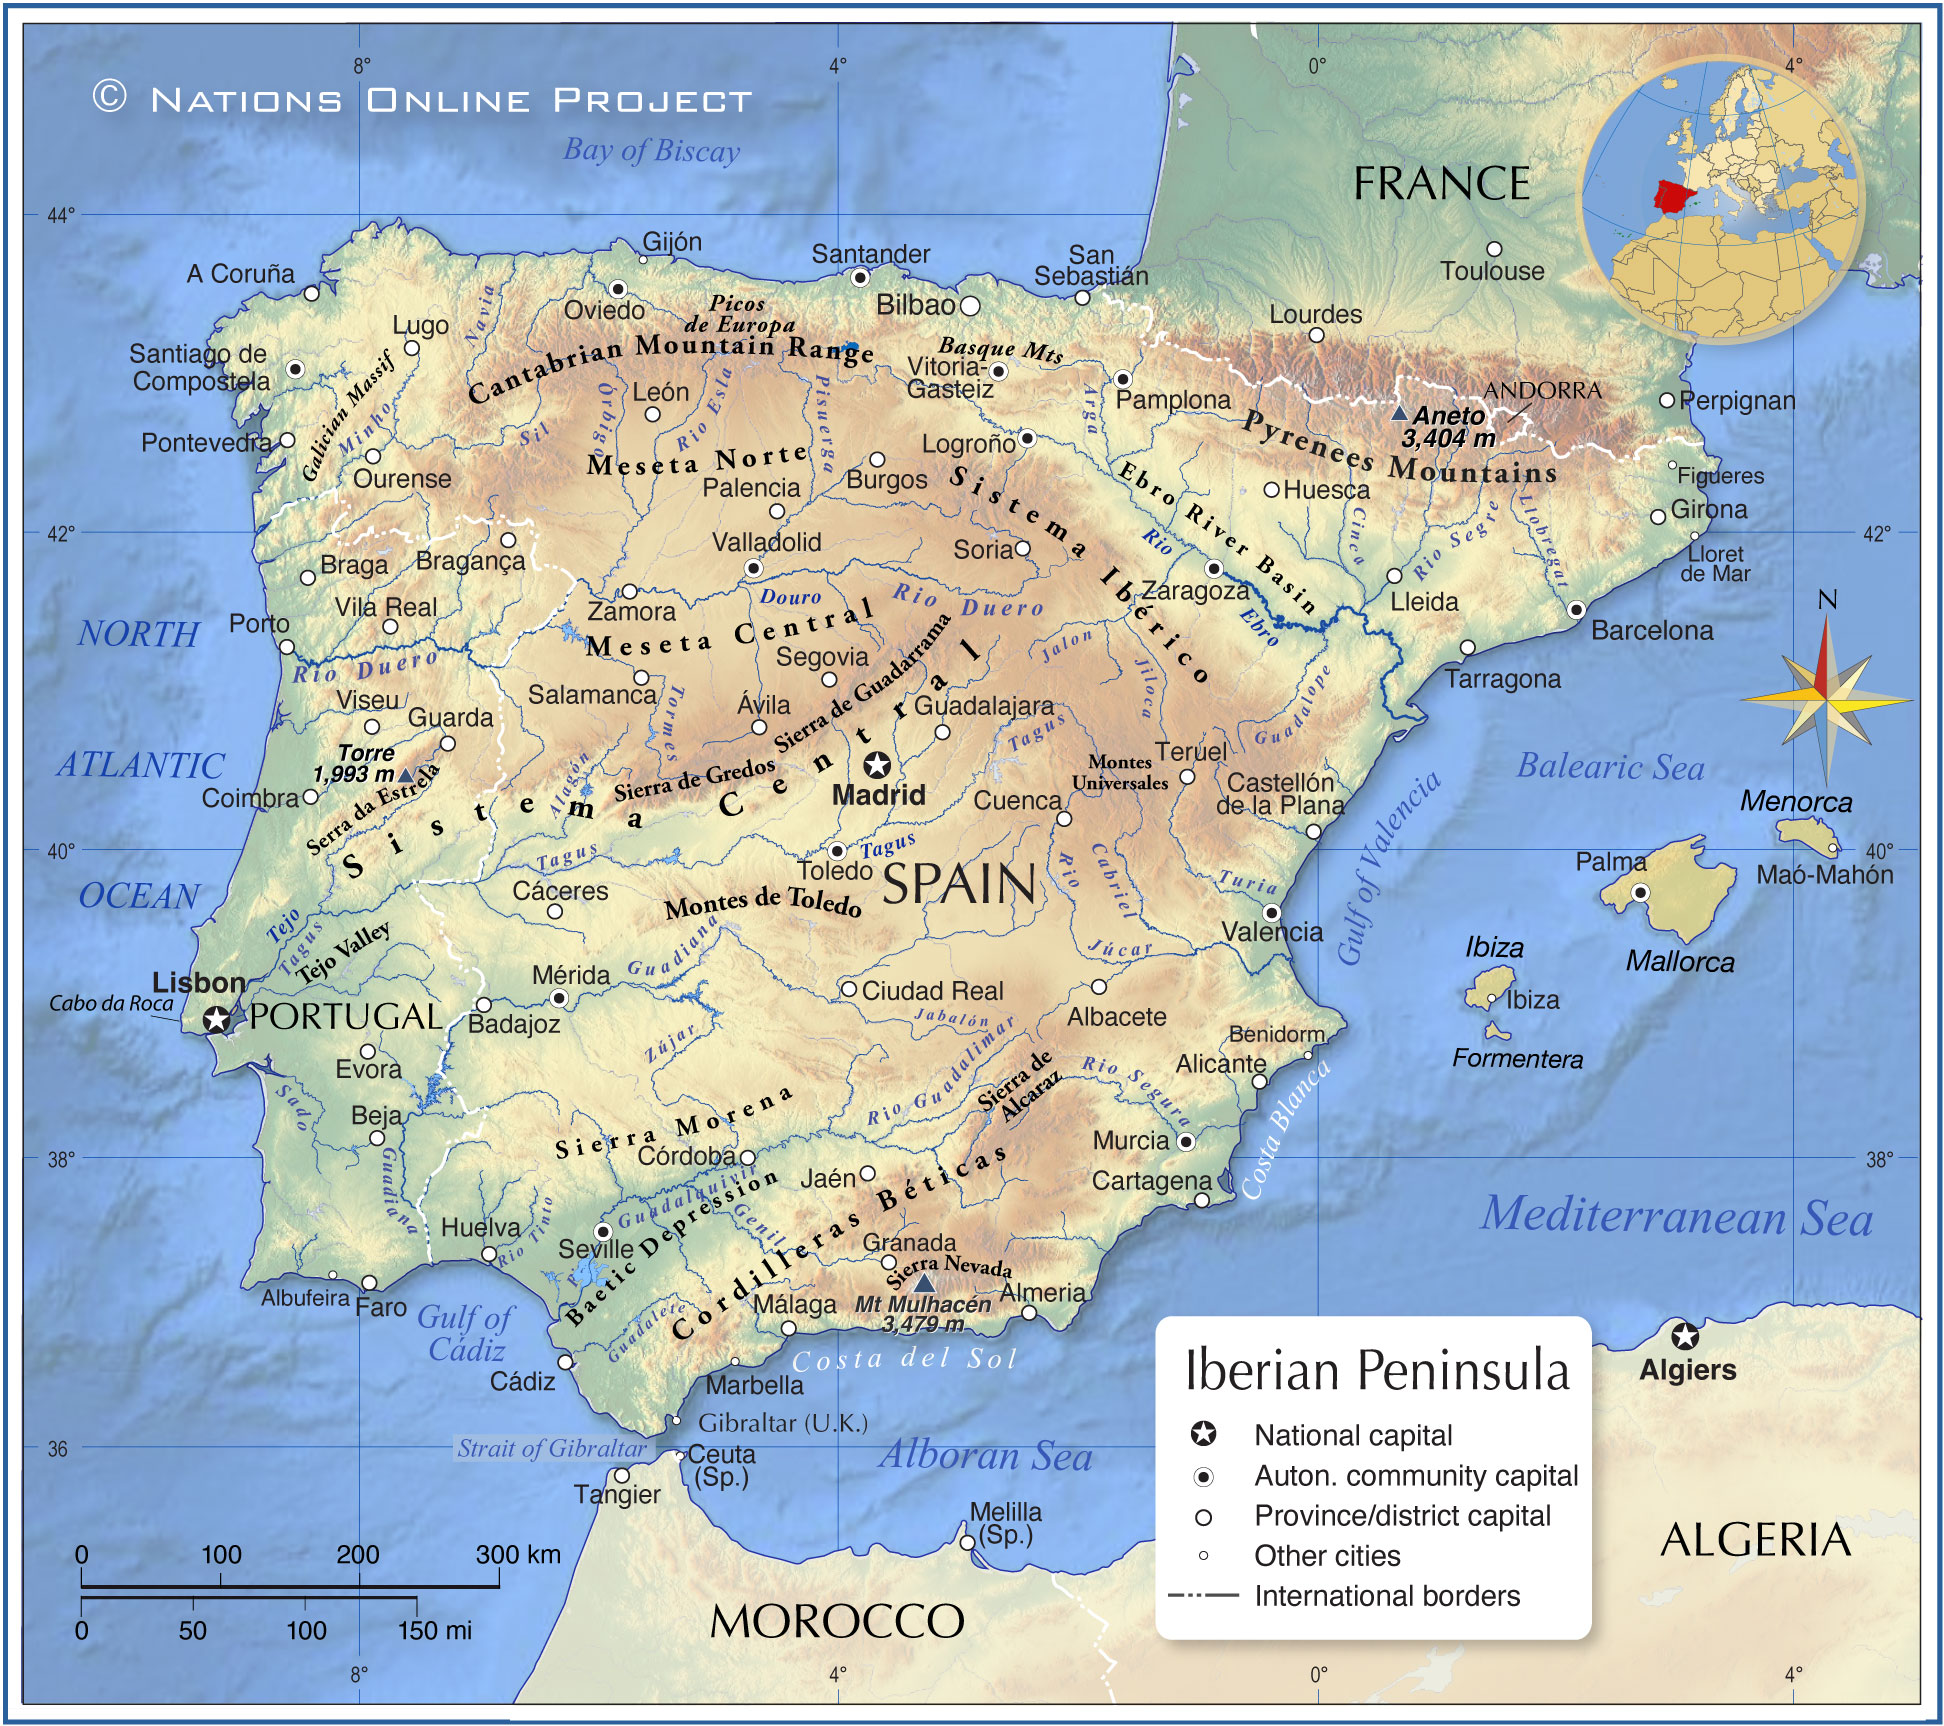 Topographic Map of Spain - Nations Online Project on spanish language, amazon river on world map, rift valley on world map, red sea on world map, bering strait on world map, middle east on world map, black sea on world map, russia on world map, black sea, indonesia on world map, rock of gibraltar, italian peninsula, india on world map, malay peninsula on world map, croatia on world map, strait of gibraltar on world map, spanish inquisition, korean peninsula on world map, indochina peninsula on world map, yucatan peninsula on world map, strait of gibraltar, scandinavian peninsula, jutland peninsula on world map, andes mountains on world map, mesoamerica world map, puget sound on world map,